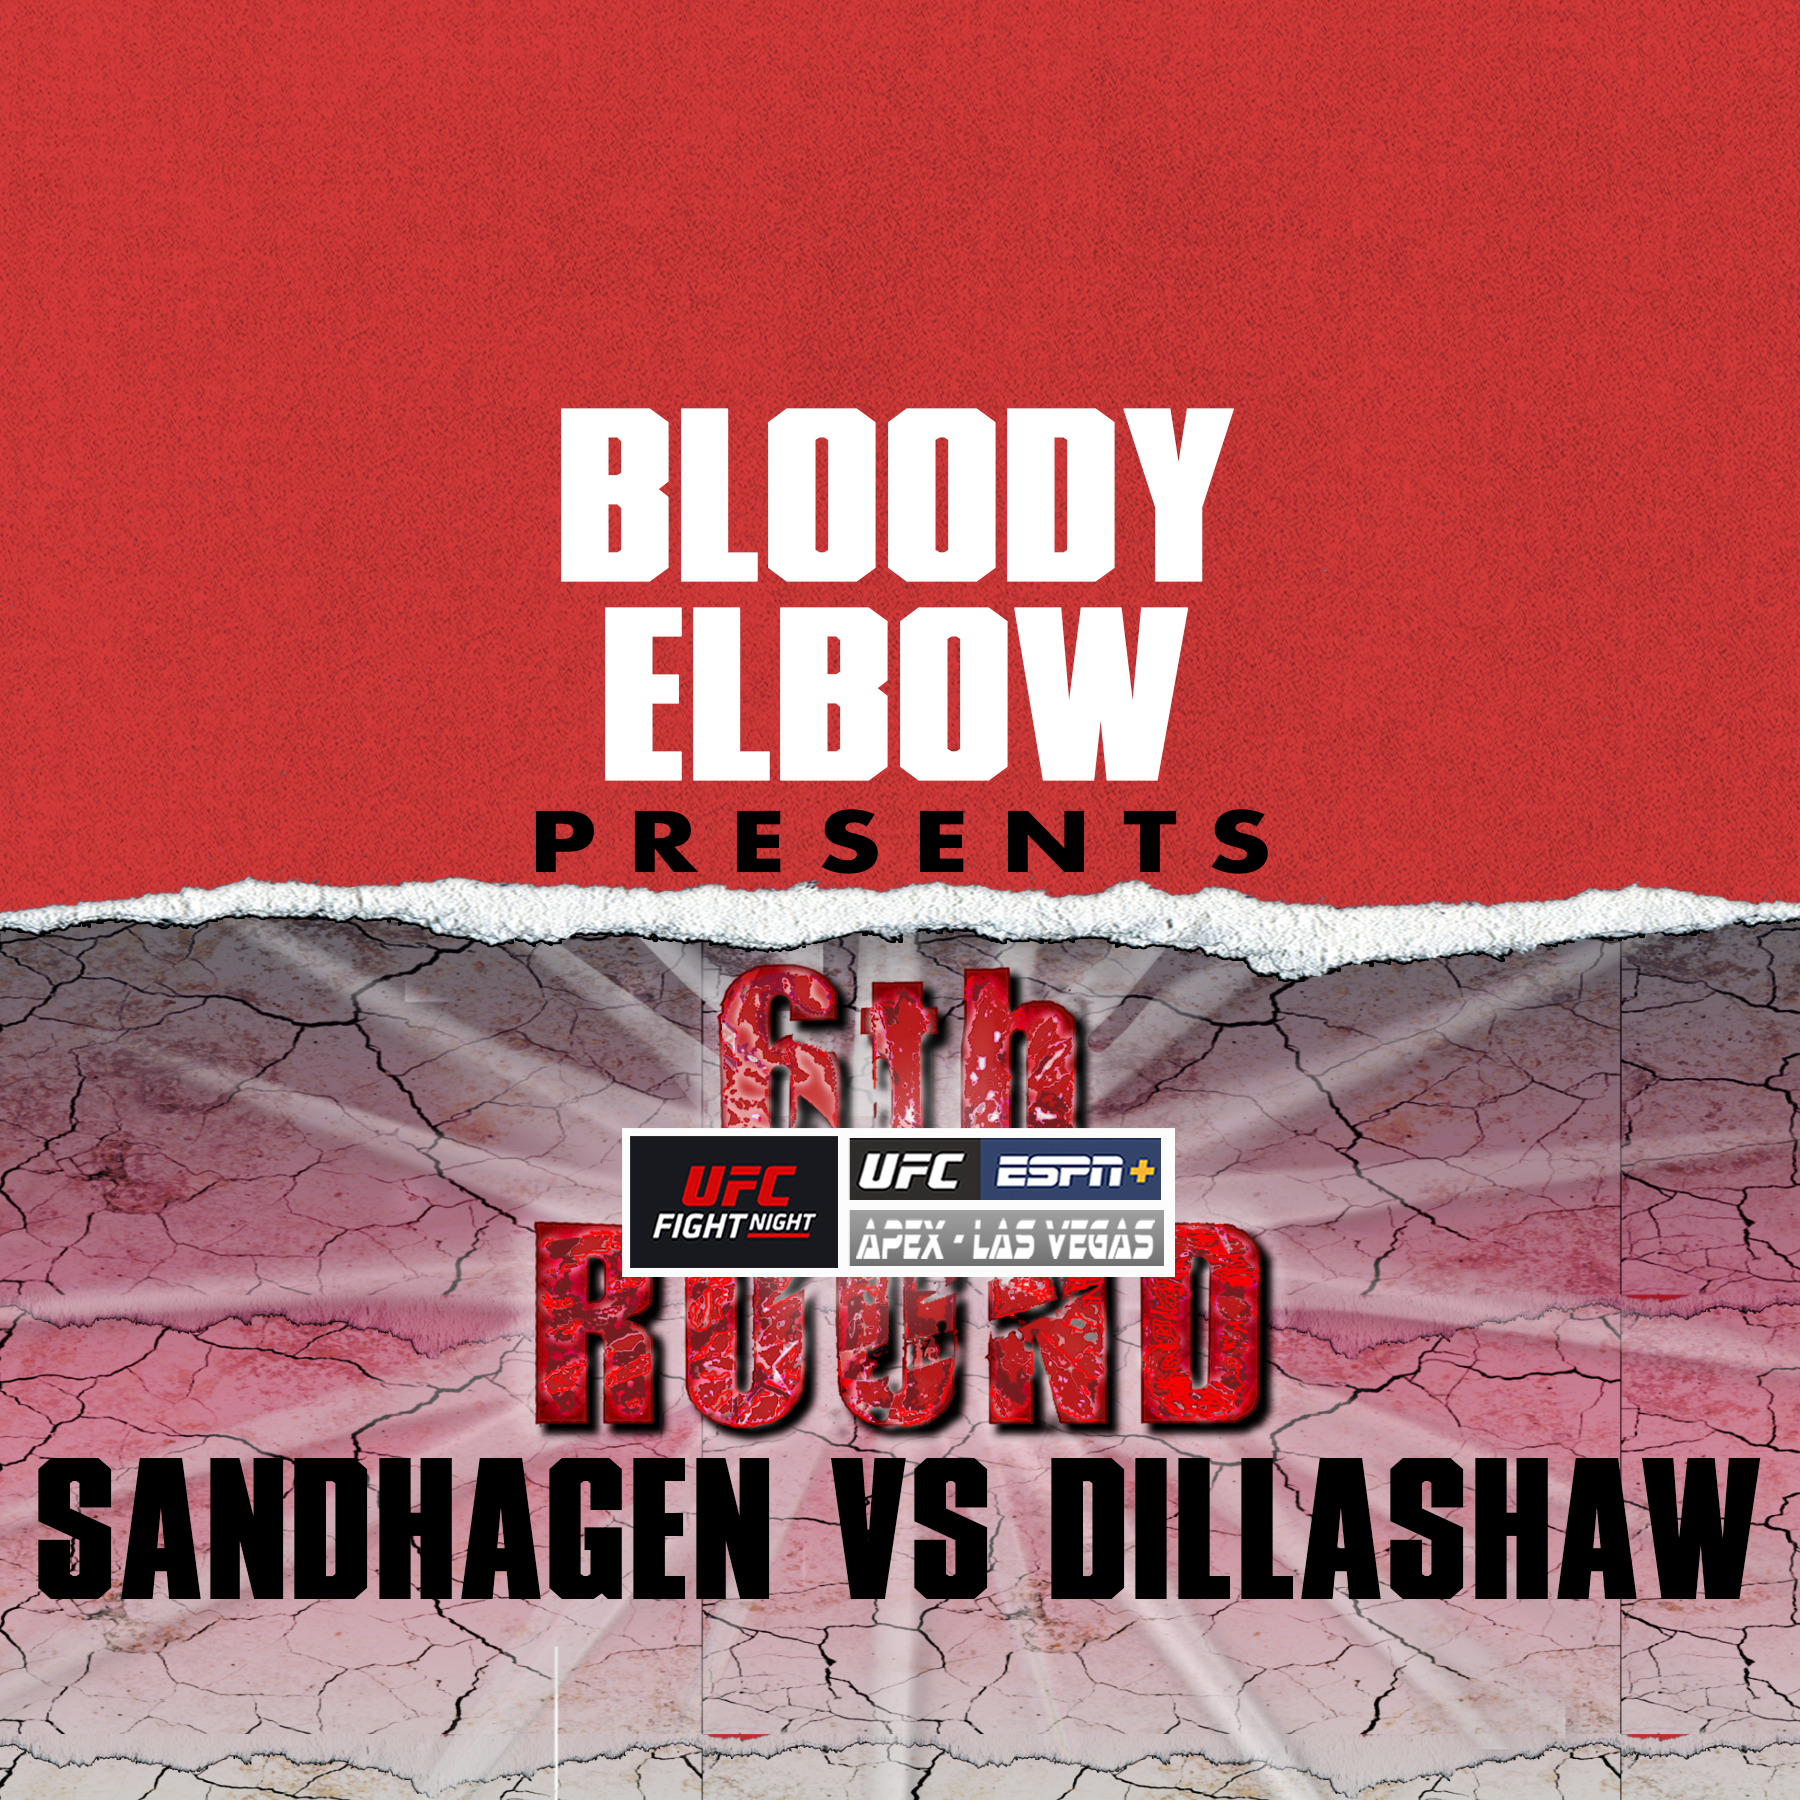 6th Rd, The 6th Round Post-Fight Show, UFC Vegas 32 Post Fight Show, UFC Results, UFC Reactions, UFC Possible Next Fights, Cory Sandhagen vs TJ Dillashaw Post Fight Show, UFC Podcast,